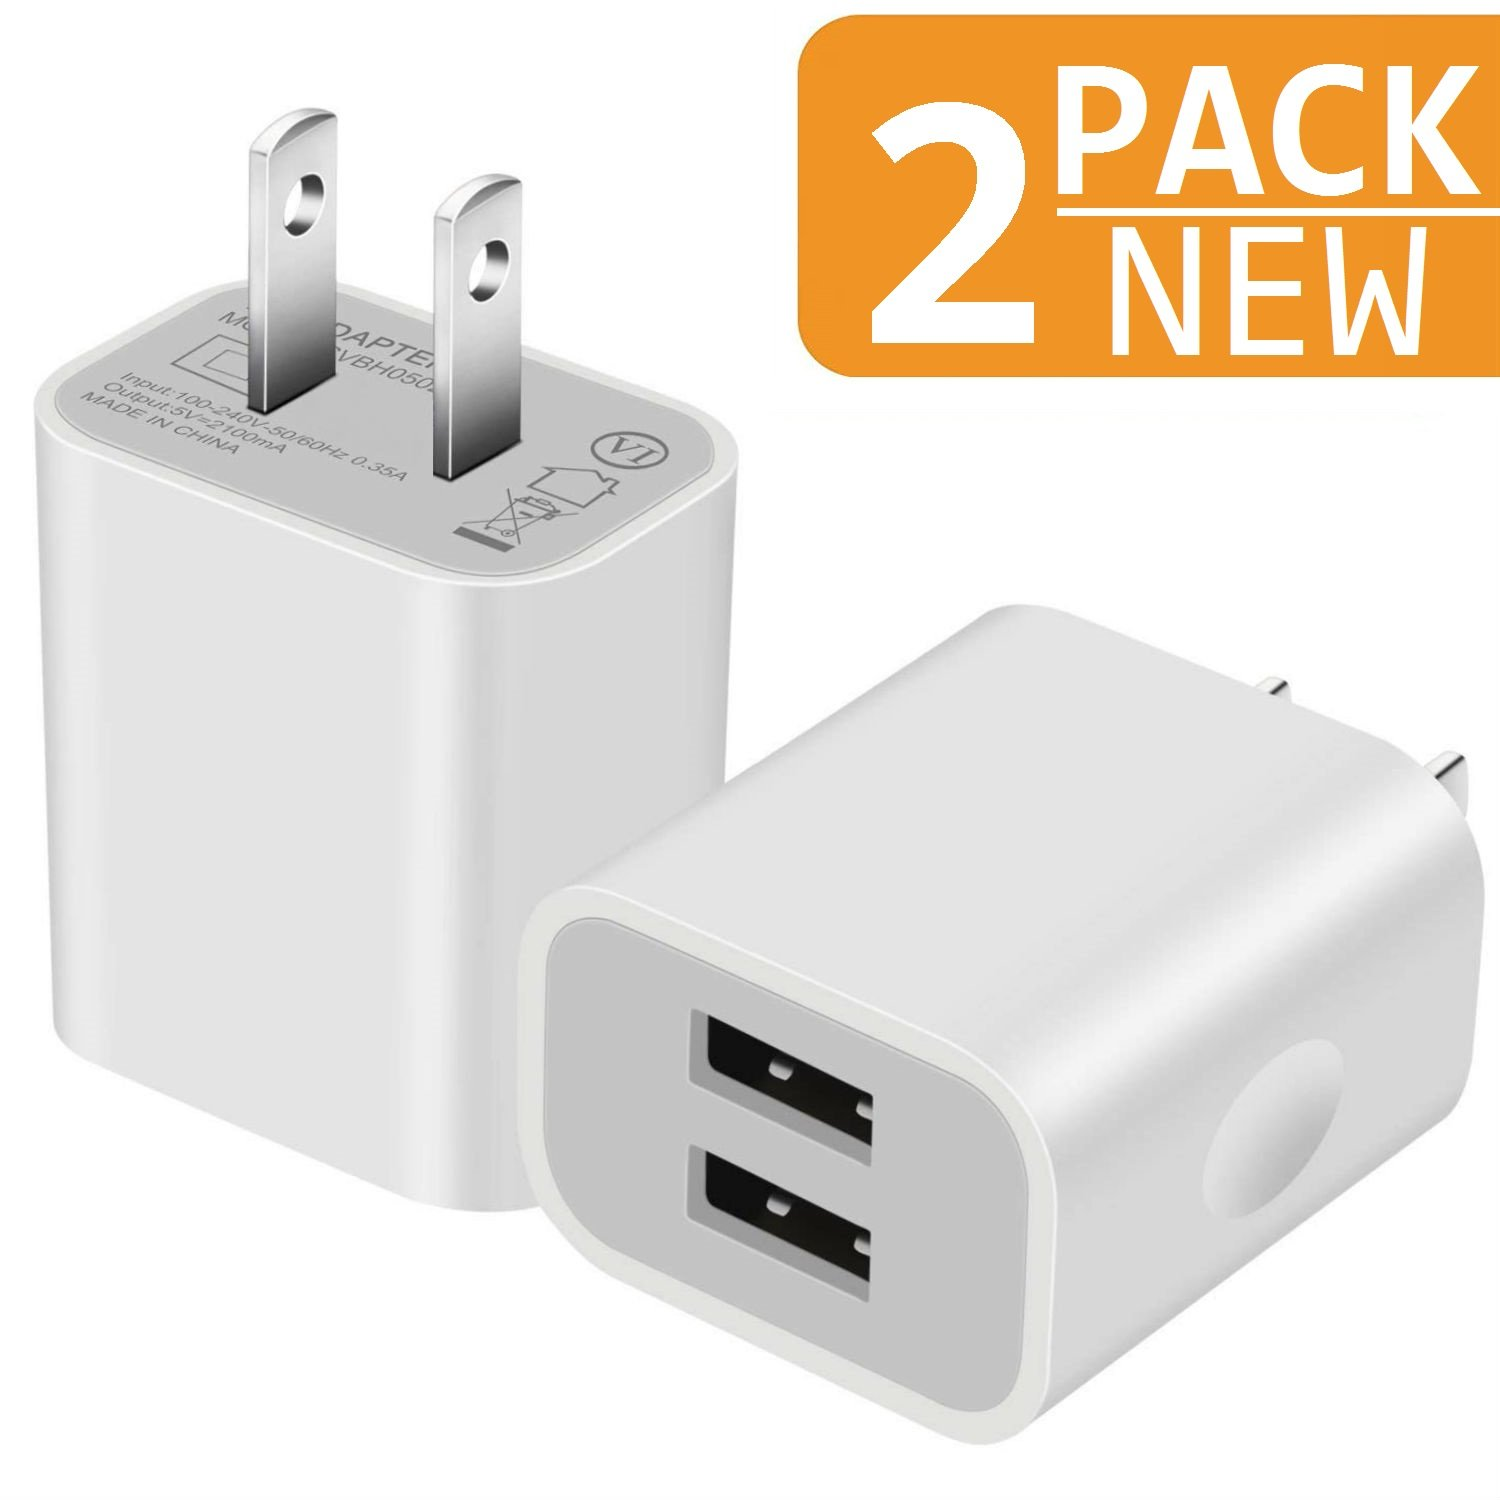 Charger, 2.1A/5V Dual 2-Port USB Plug Wall Charger Plug Power Adapter Fast Charging Cube (White) 2-Pack